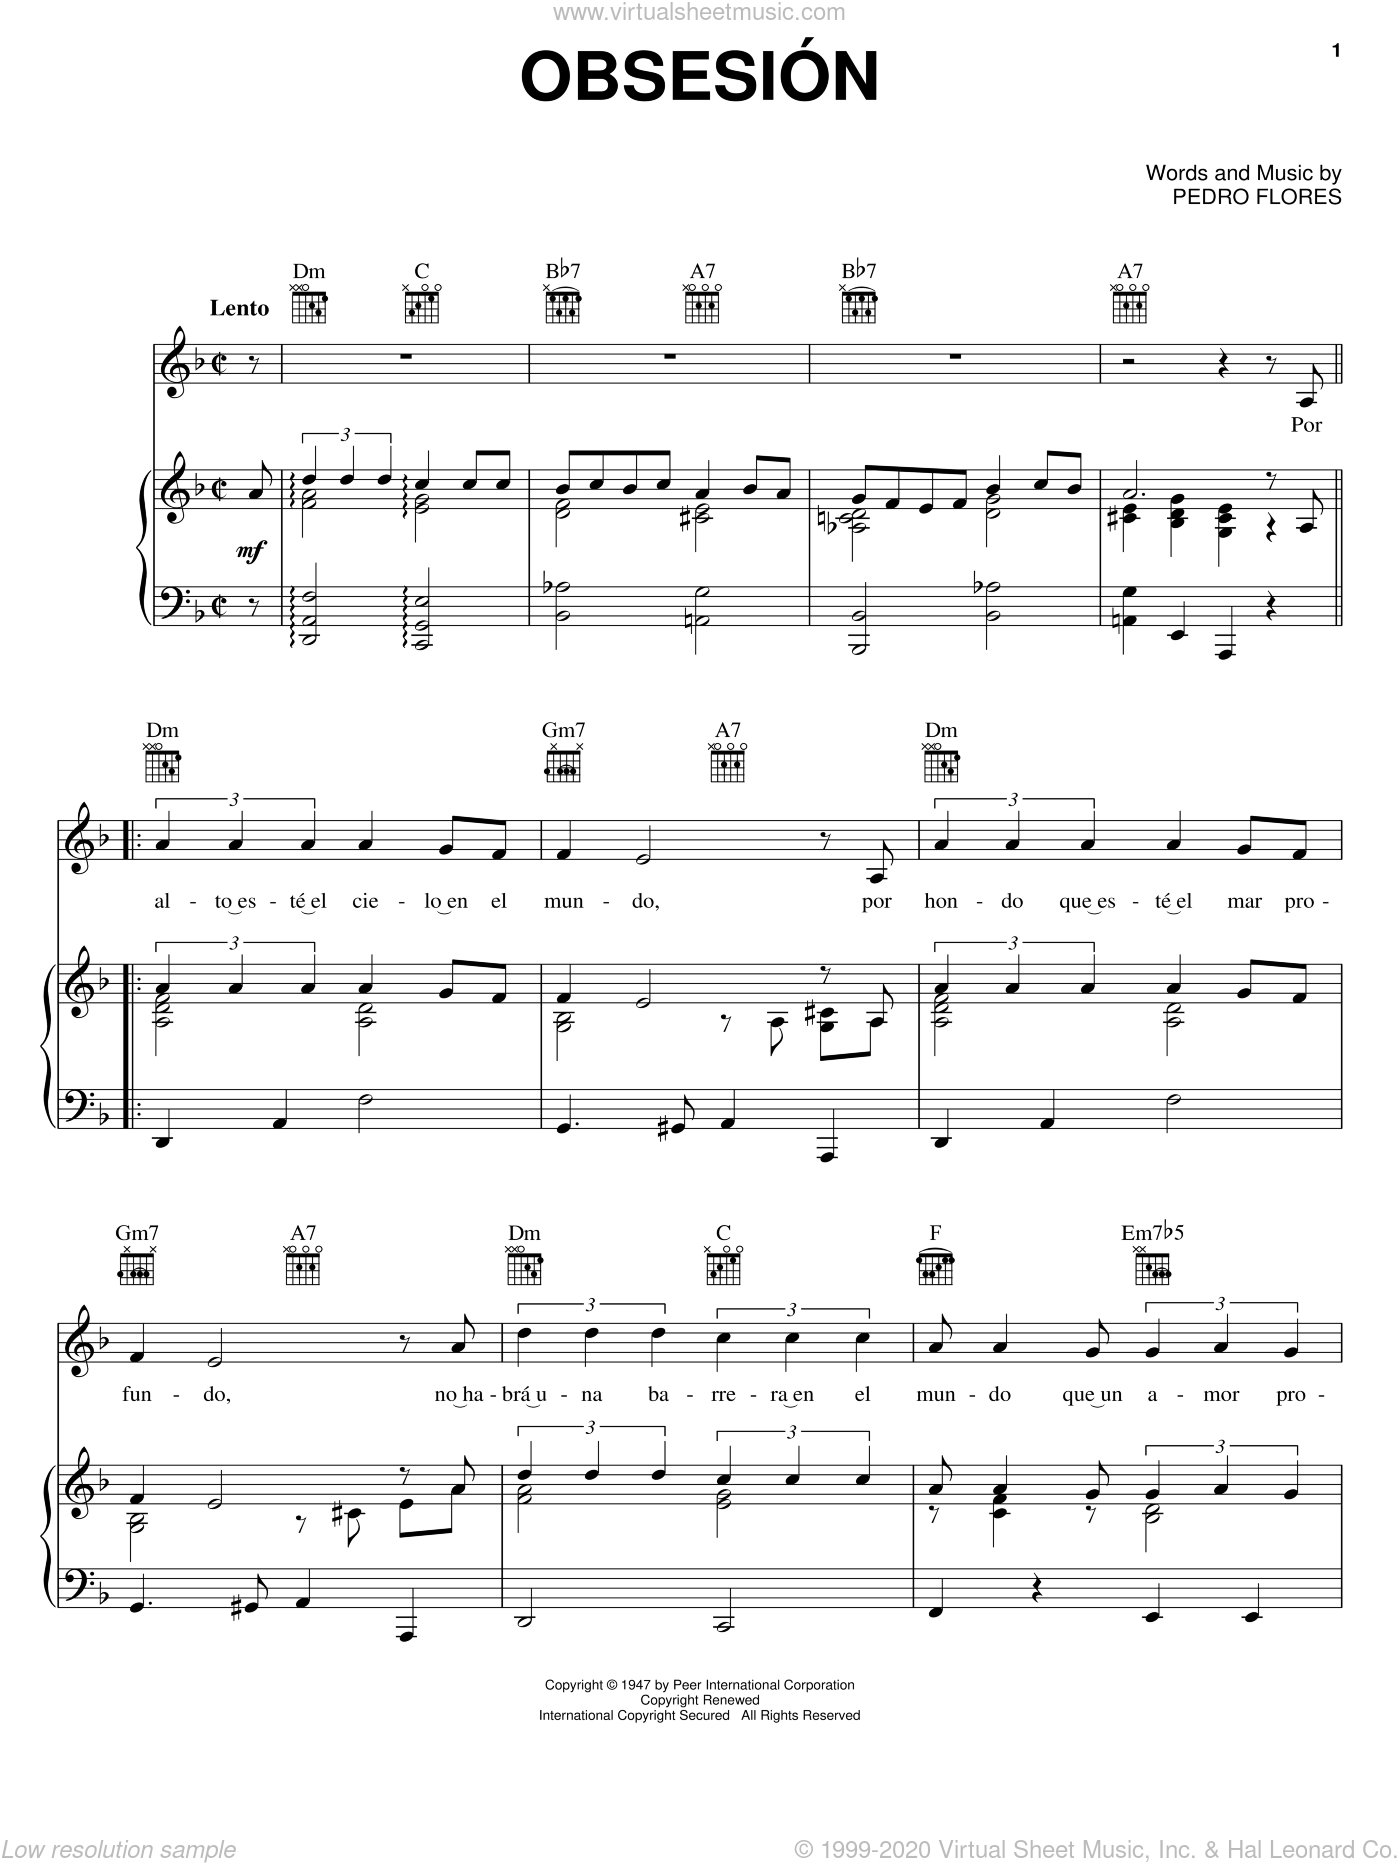 Obsesion sheet music for voice, piano or guitar by Pedro Flores, intermediate skill level